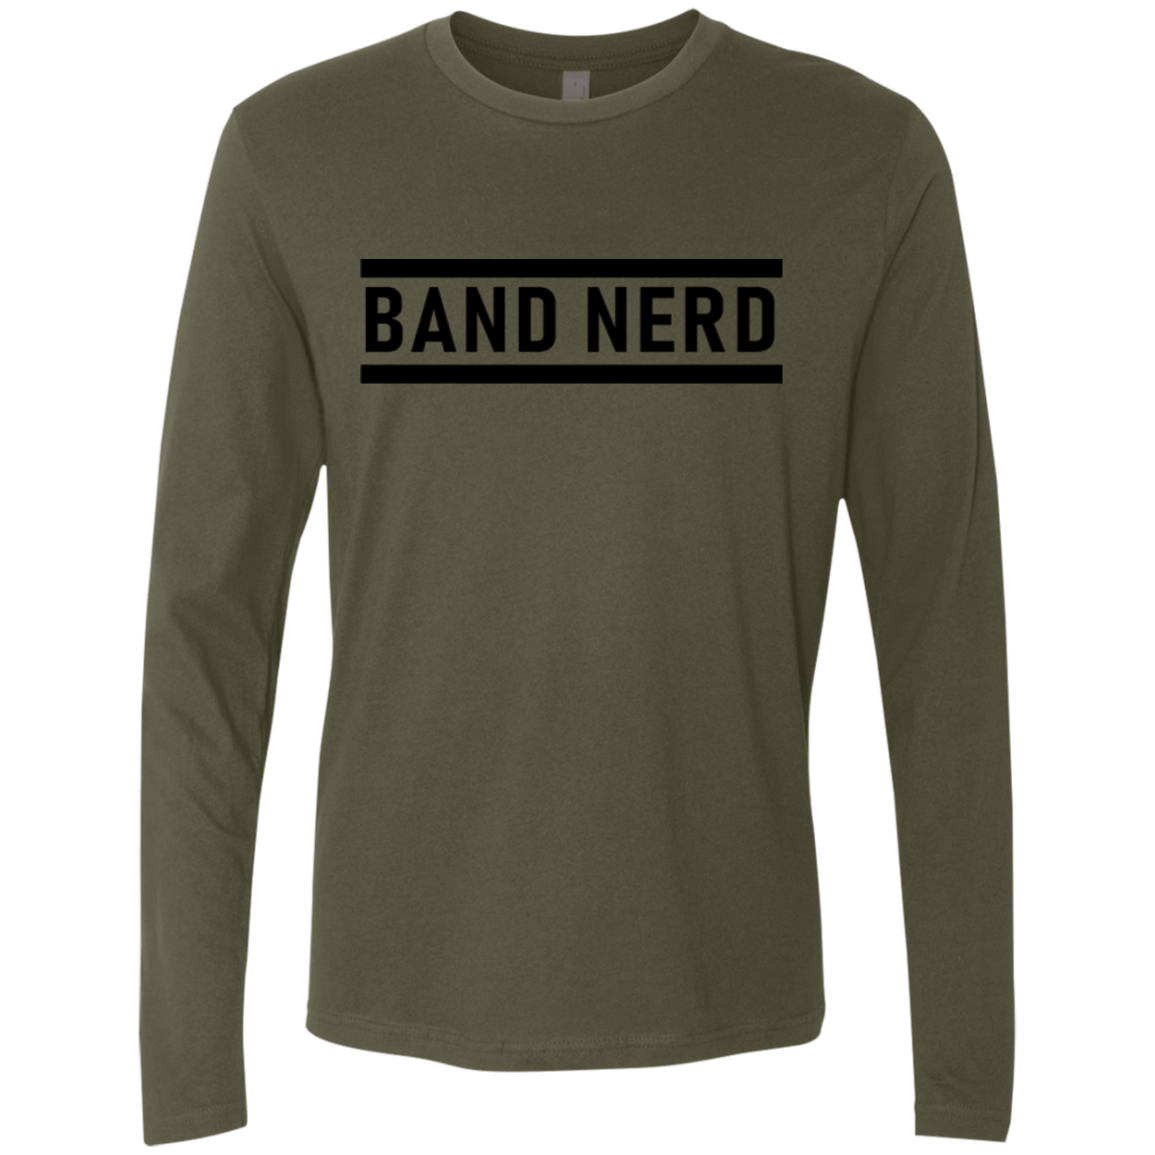 Band Nerd Men's Long Sleeve Tee